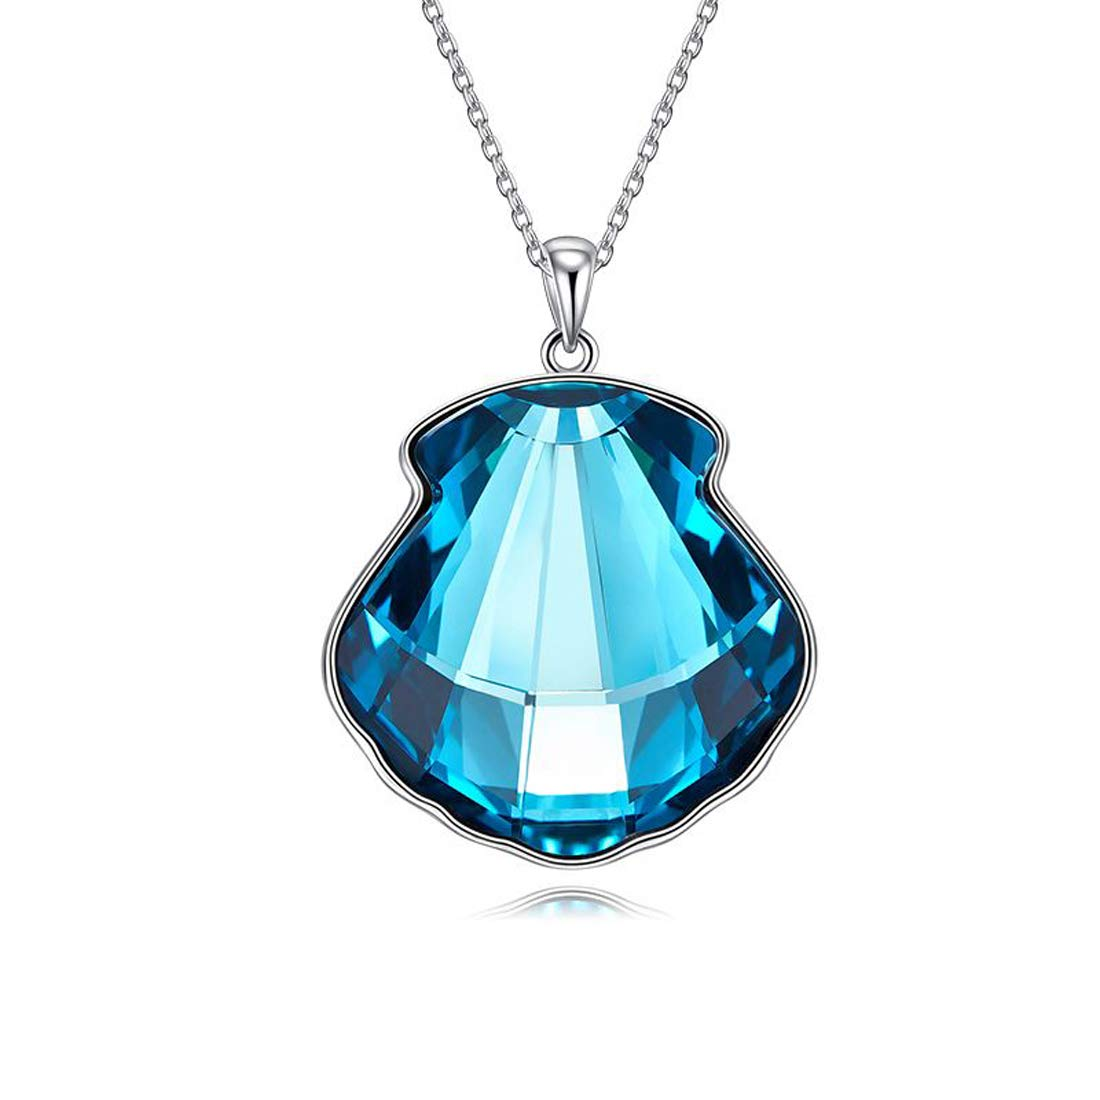 CQFONG Seashell Blue Crystal Pendants Necklaces for Women Girl Bohemian Jewelry,Crystals from Swarovski